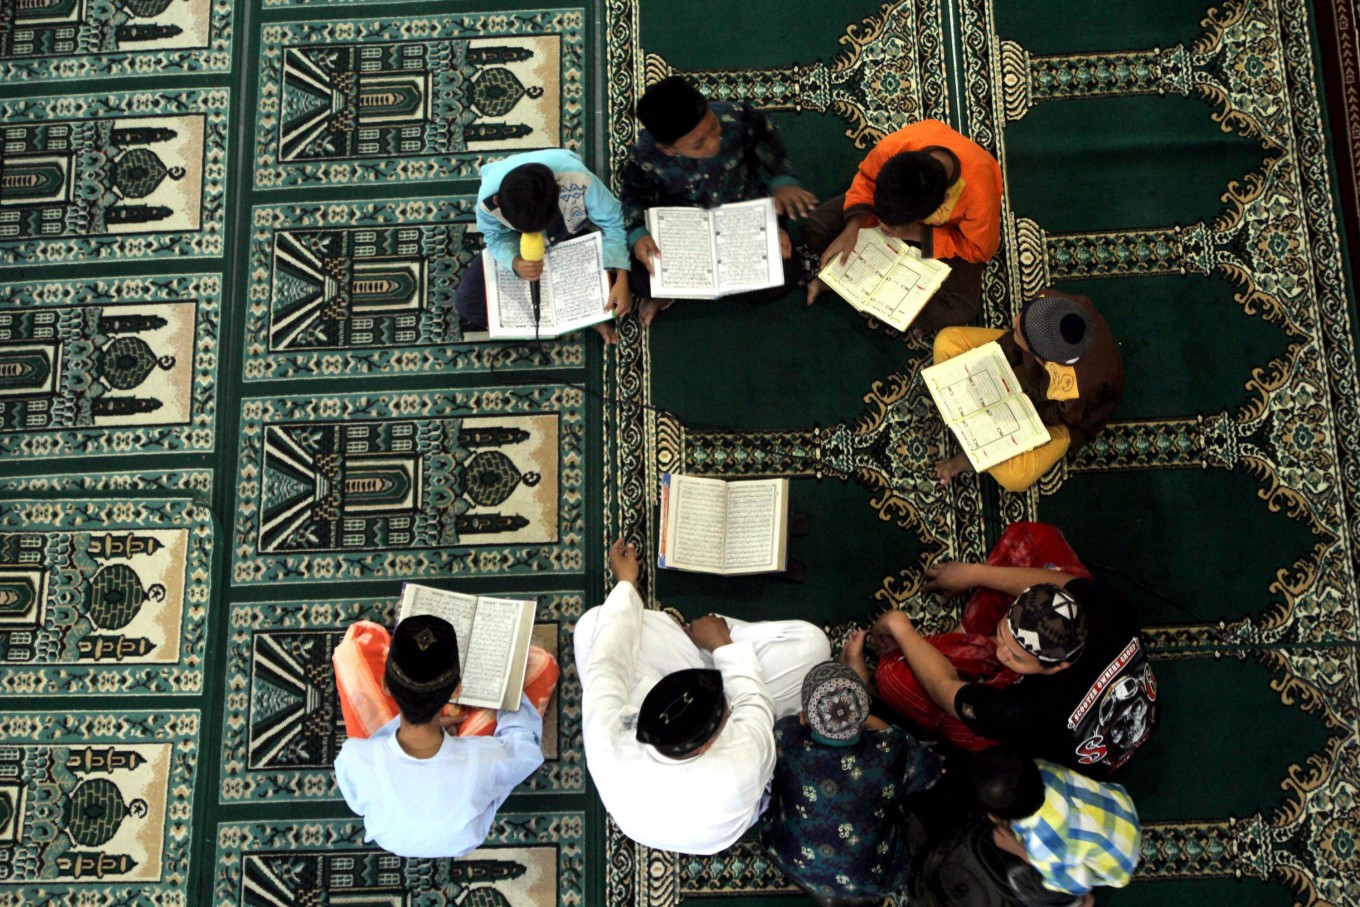 Muslims carry out 'Megibung' tradition in Bali